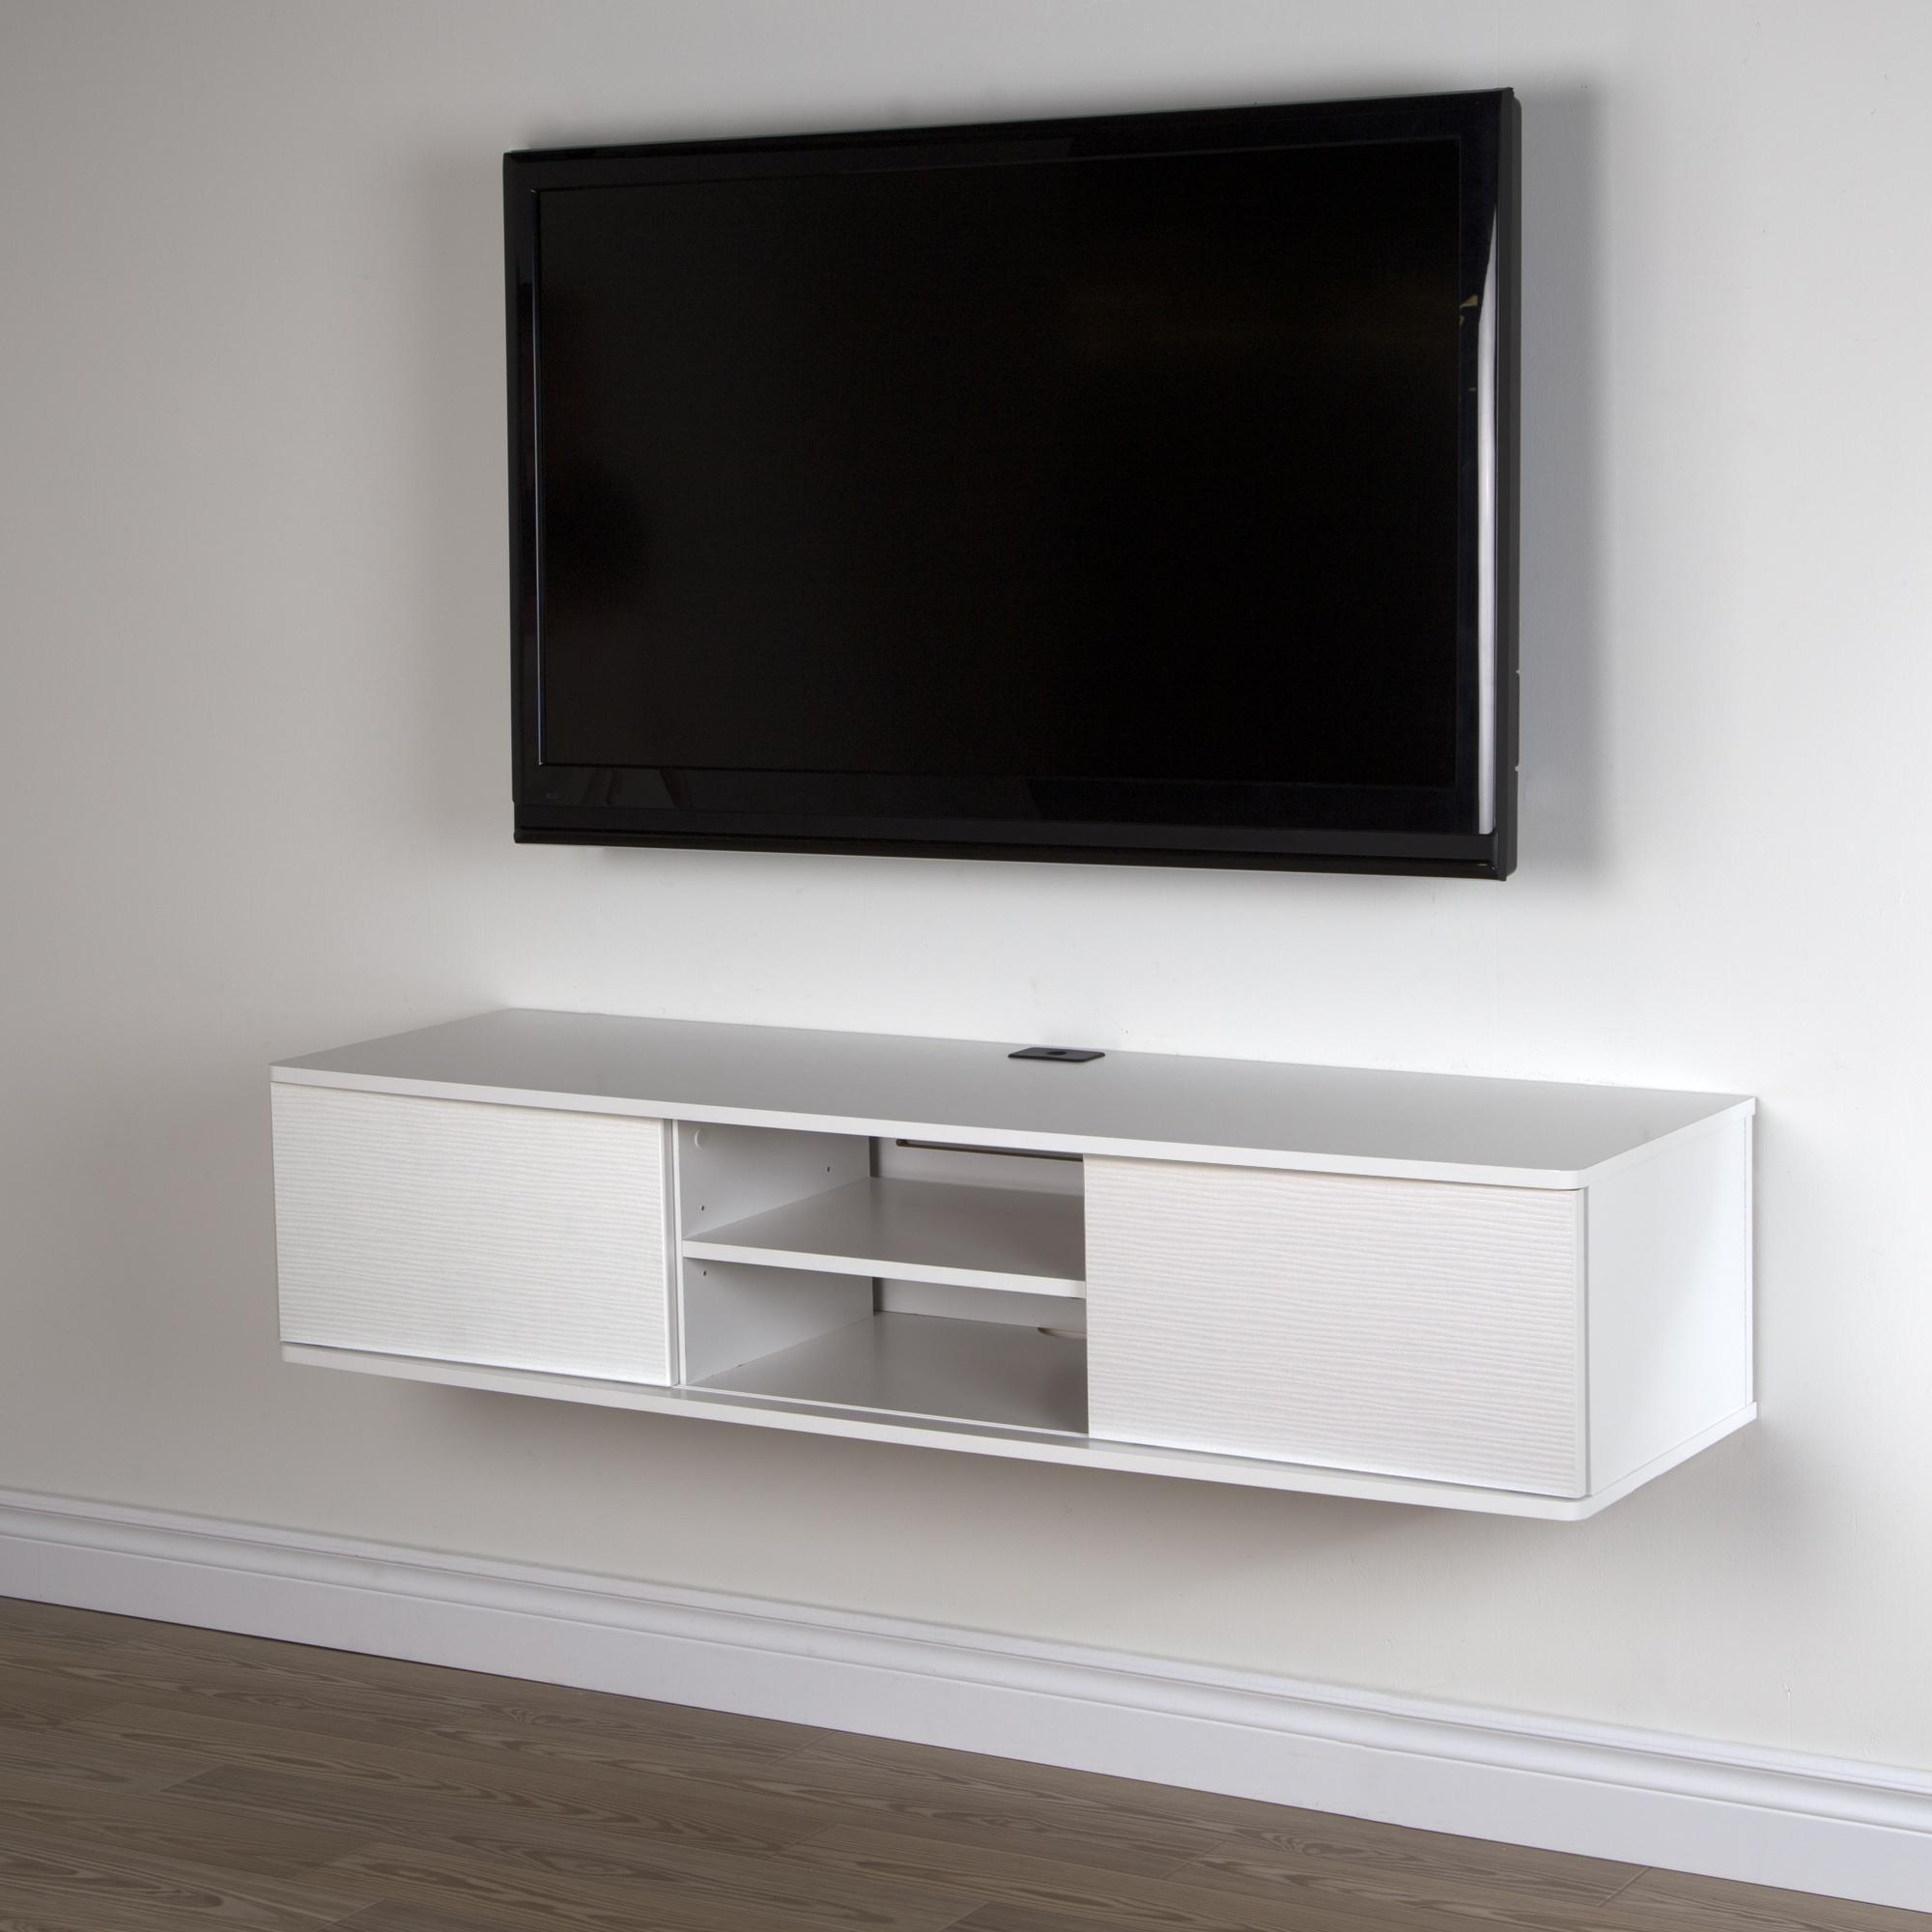 Hanging Media Console South Shore Agora 56 Quot Wide Wall Mounted Media Console By